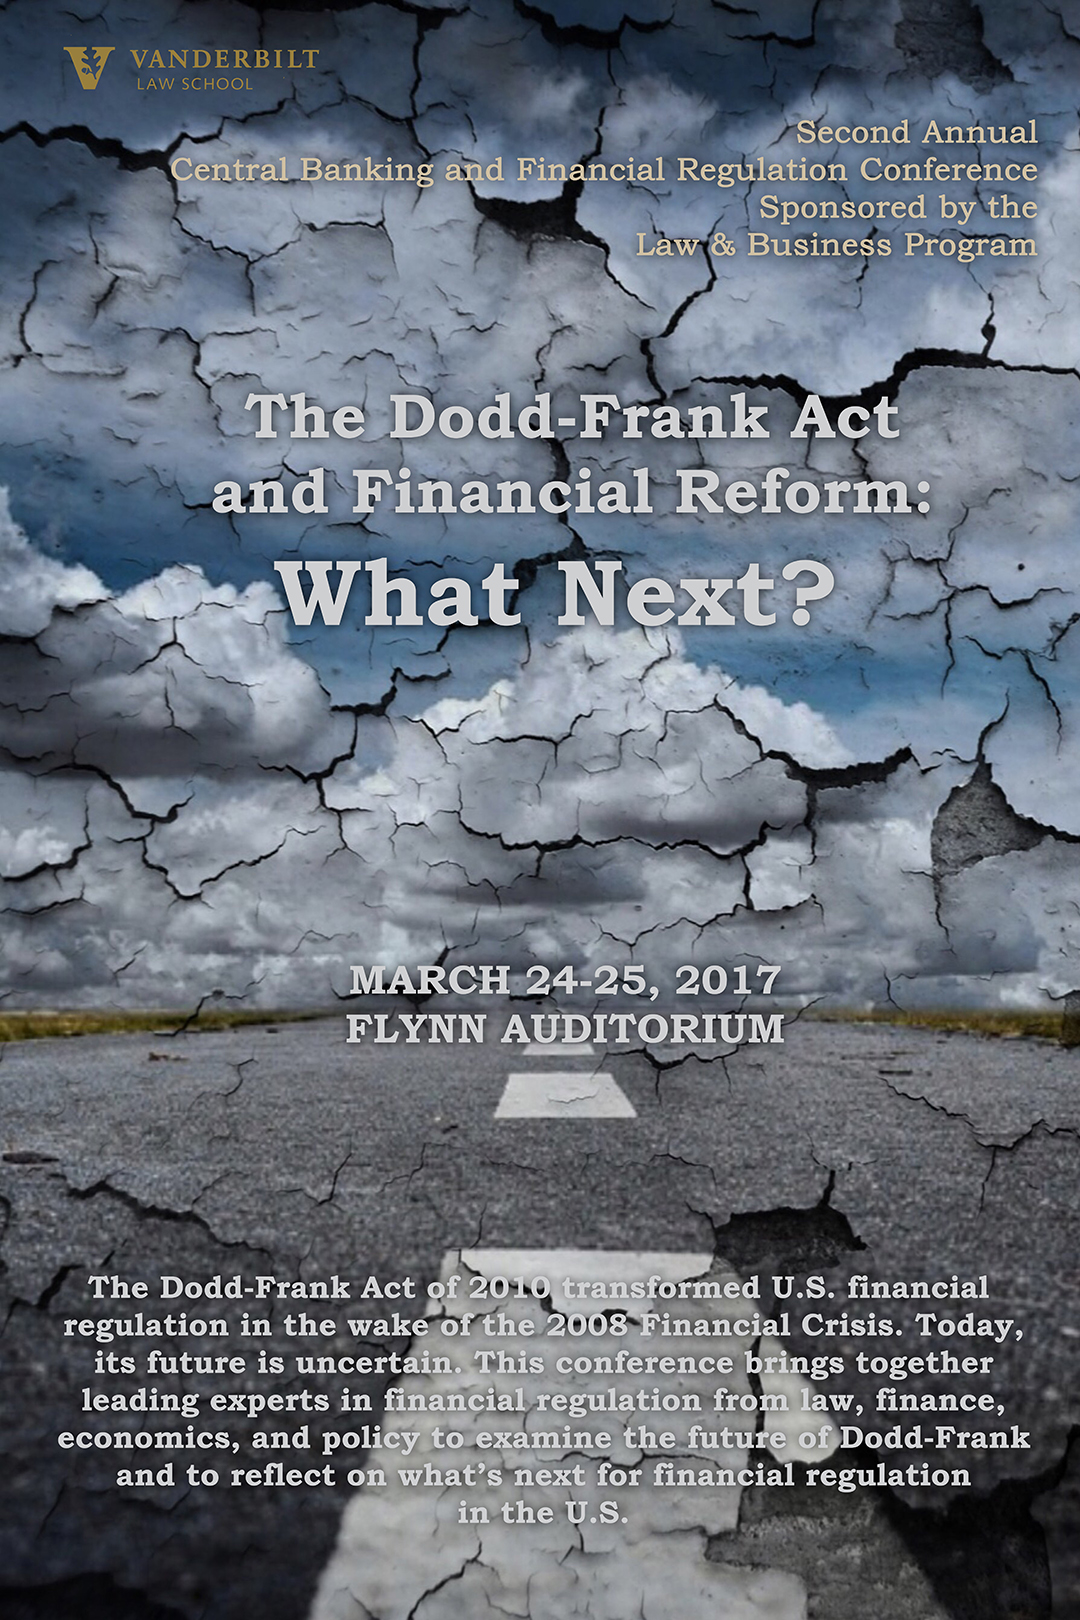 The Dodd-Frank Act and Financial Reform: What Next?